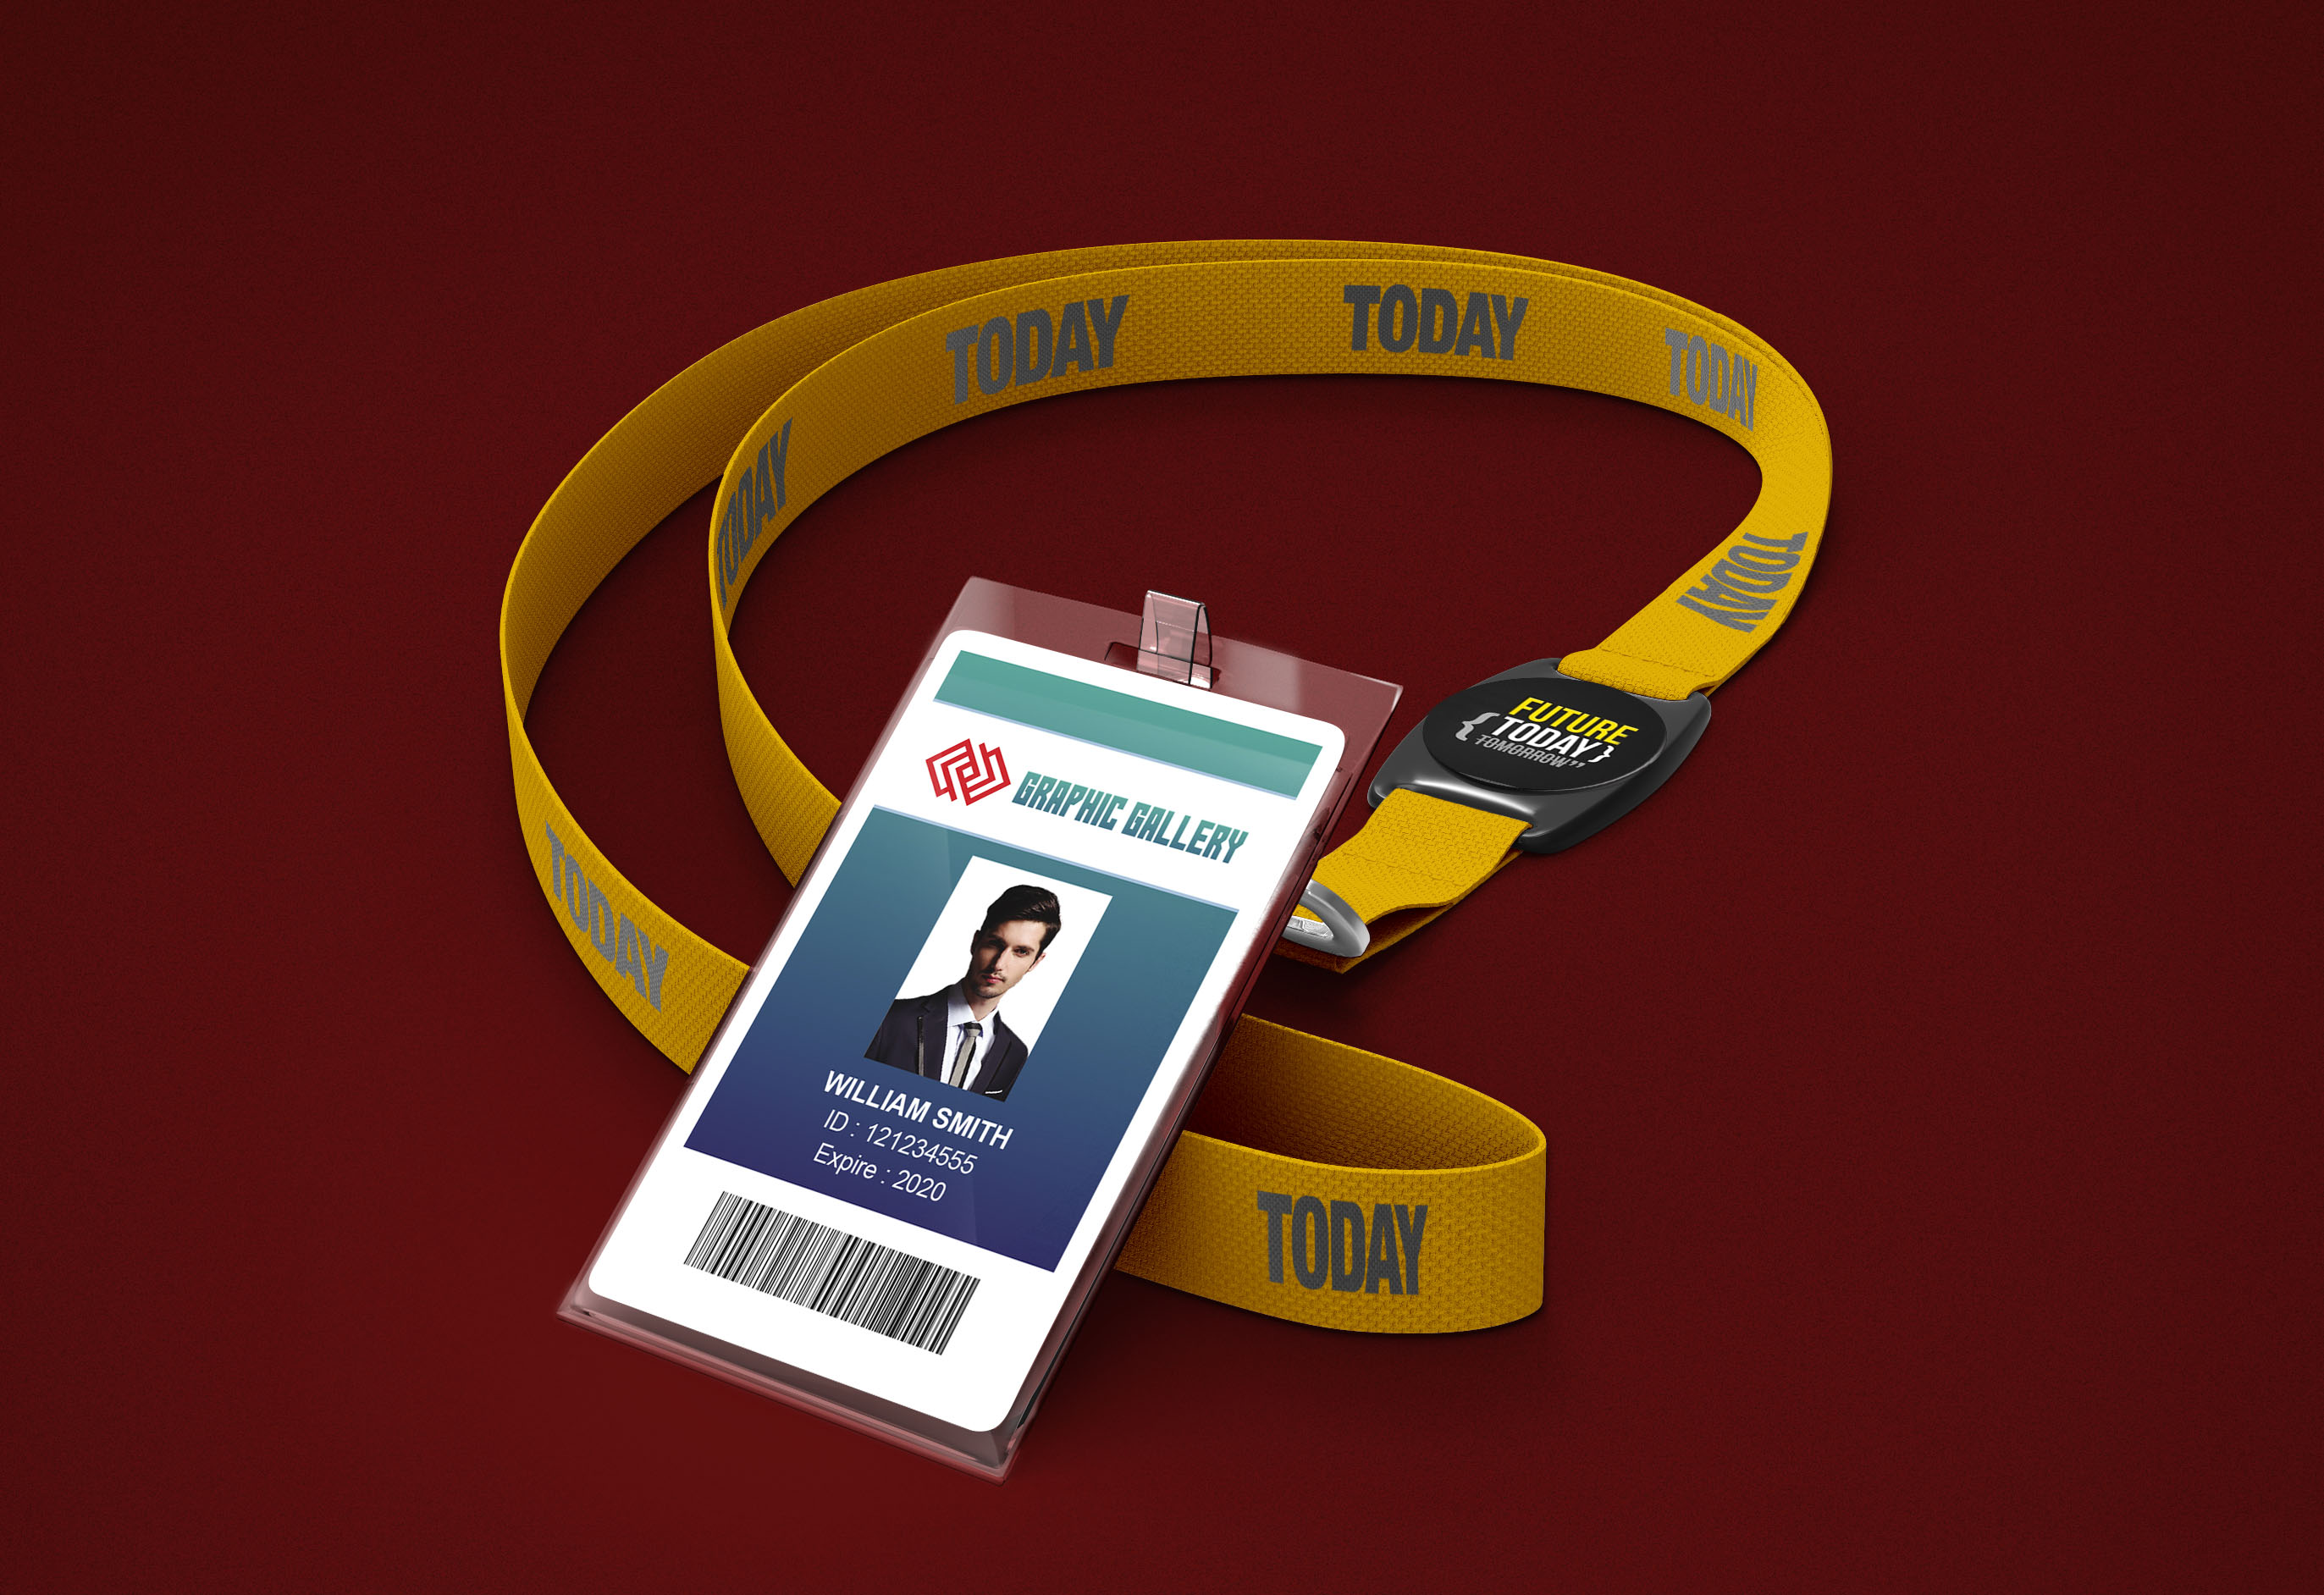 ID Card Design Professional within 24 hours